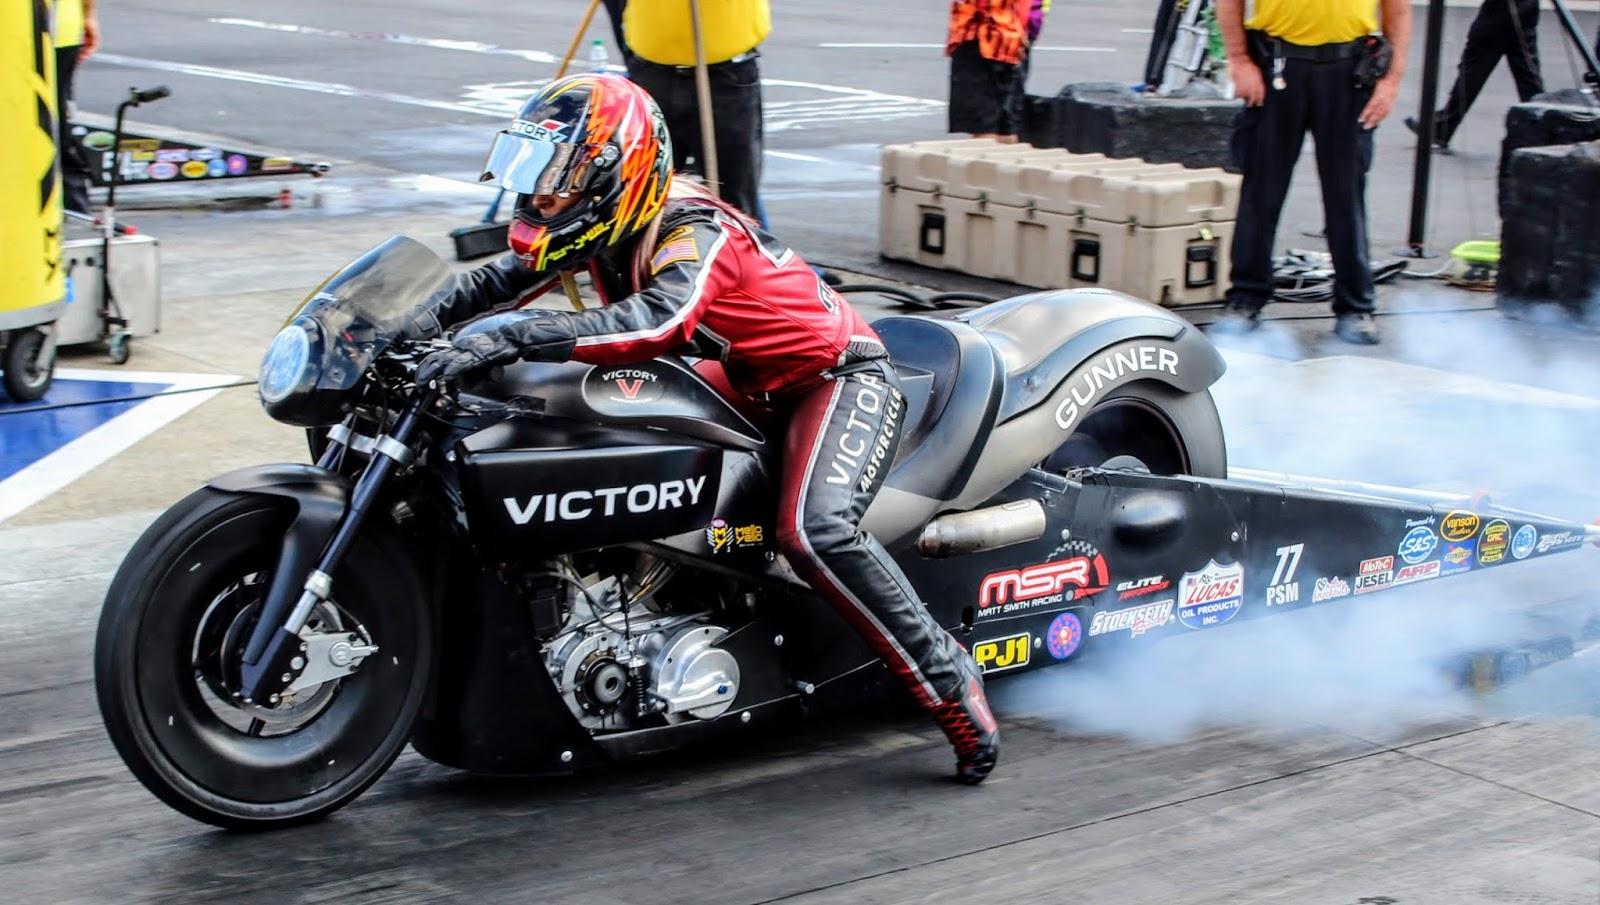 Victory's Angie Smith thrilled with qualifying effort in Las